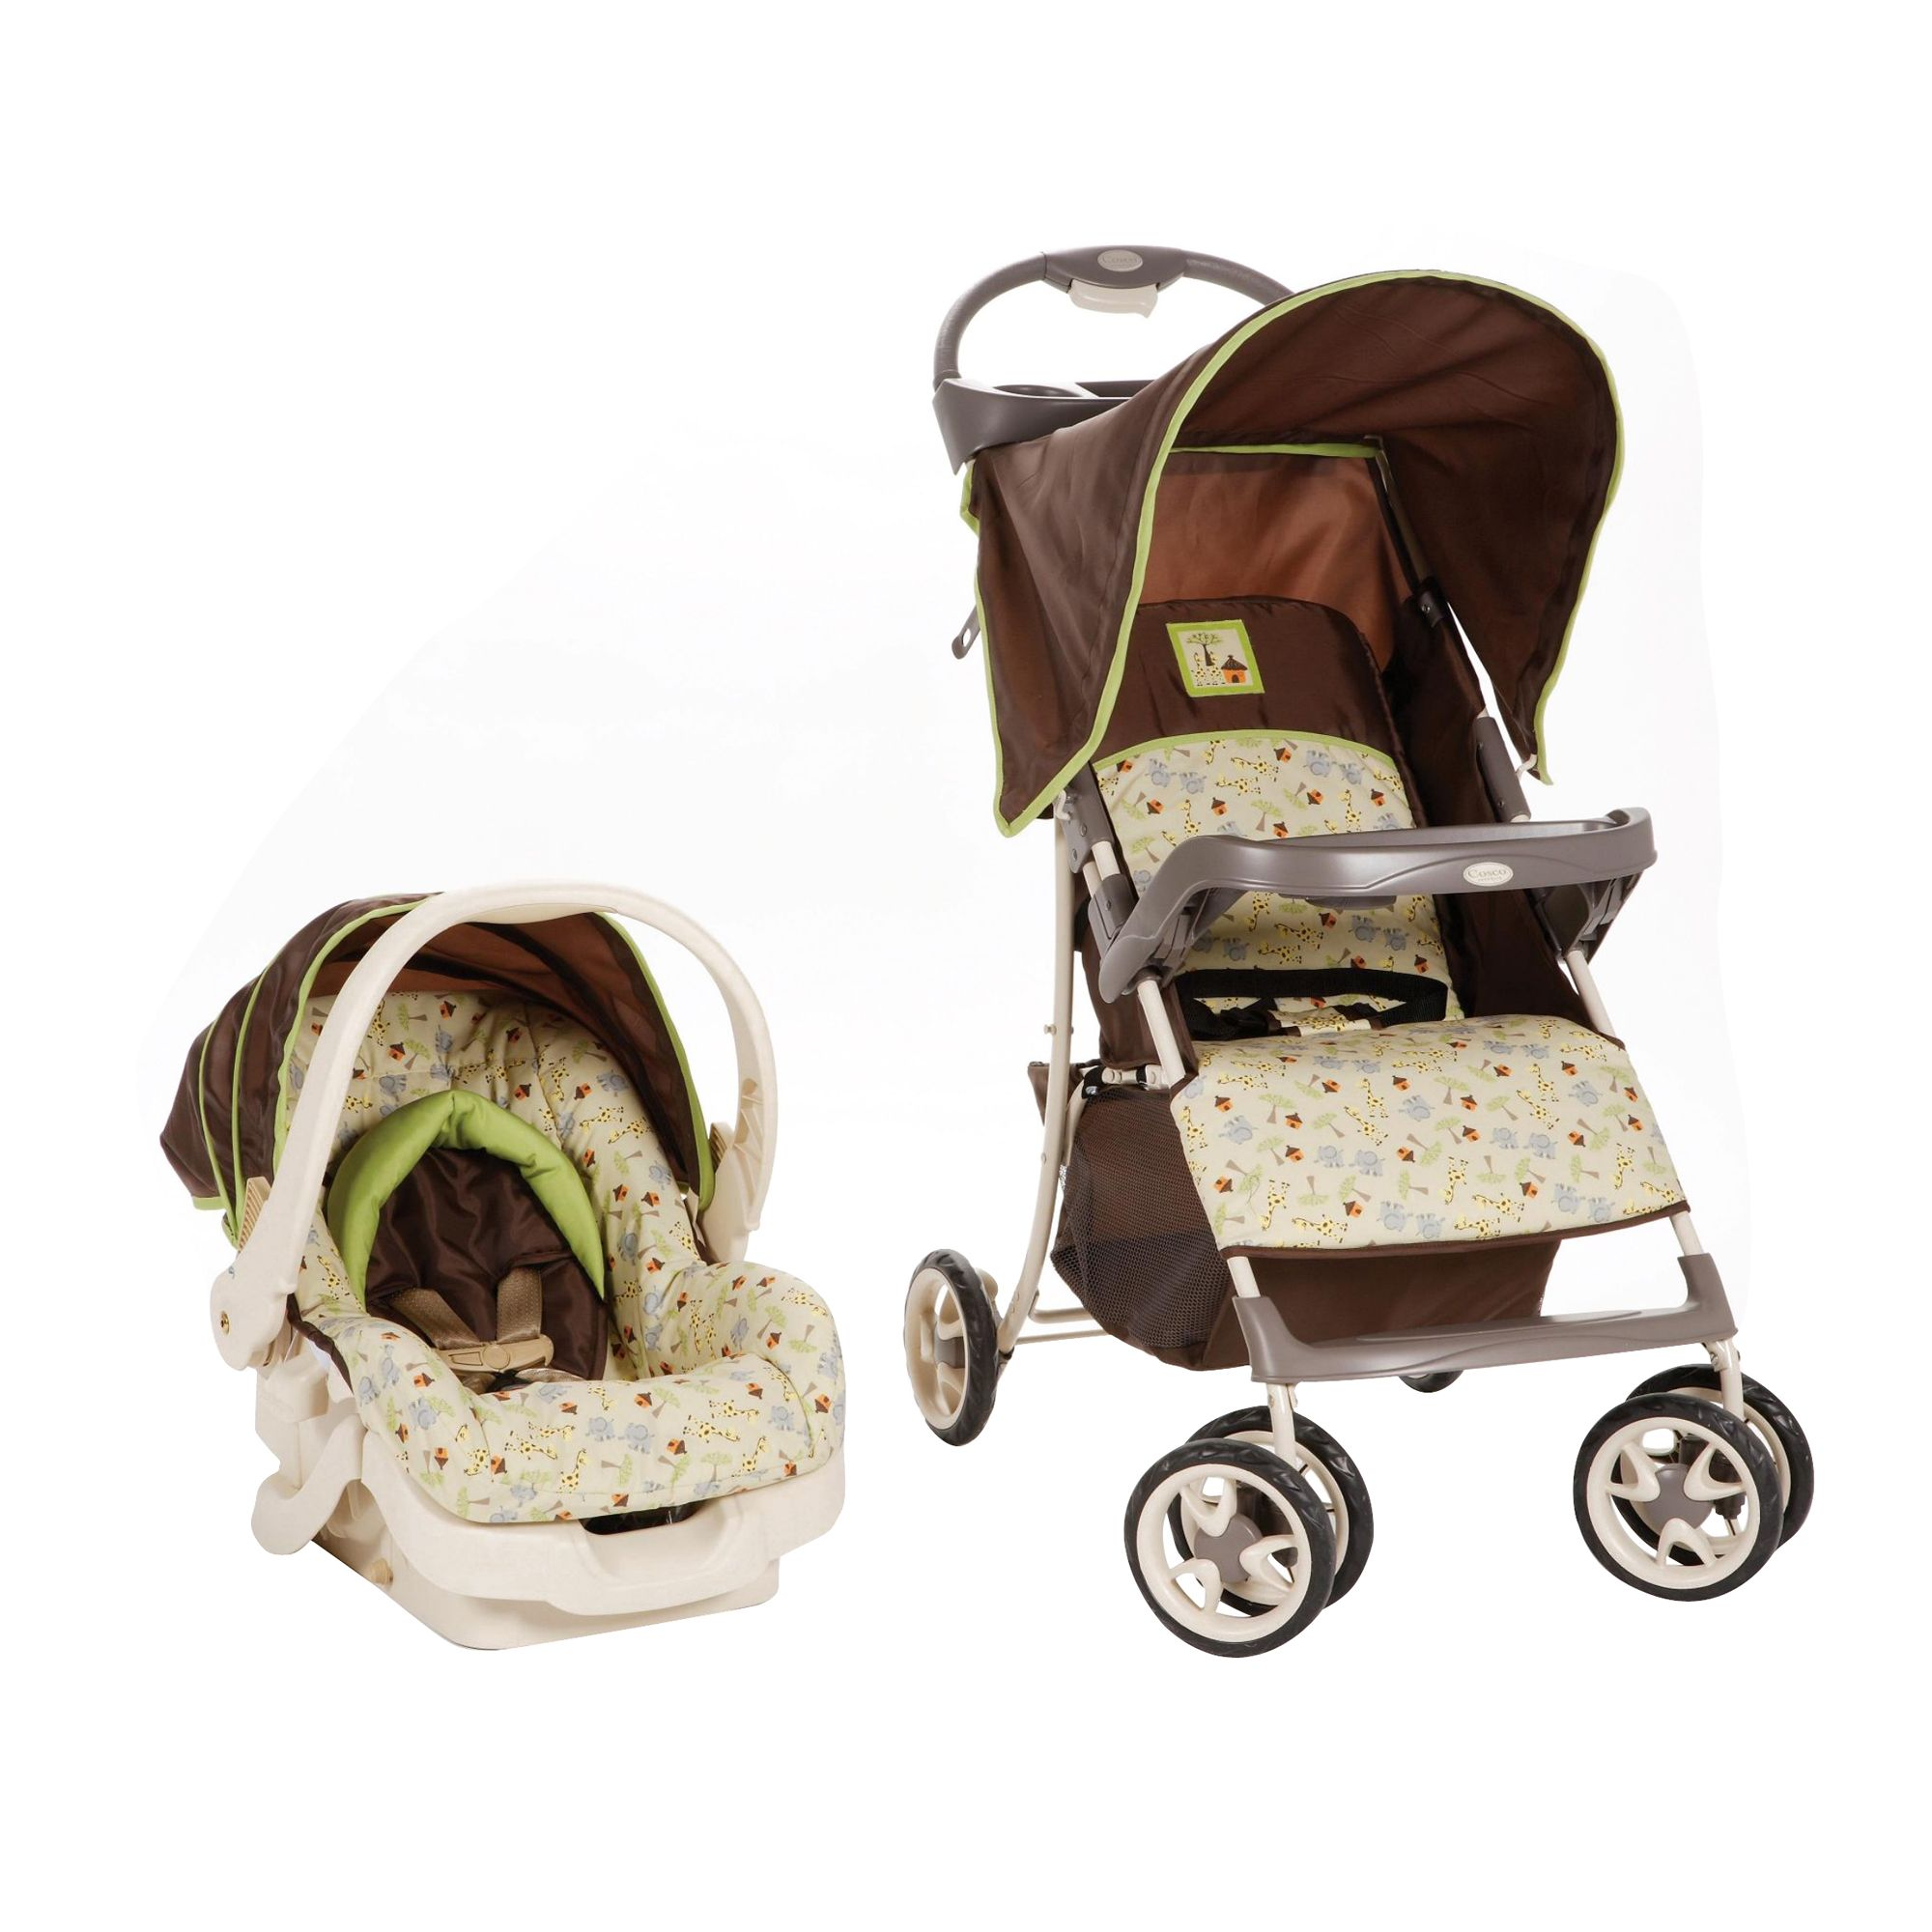 cosco baby chair walmart outdoor safari in africa collection travel system